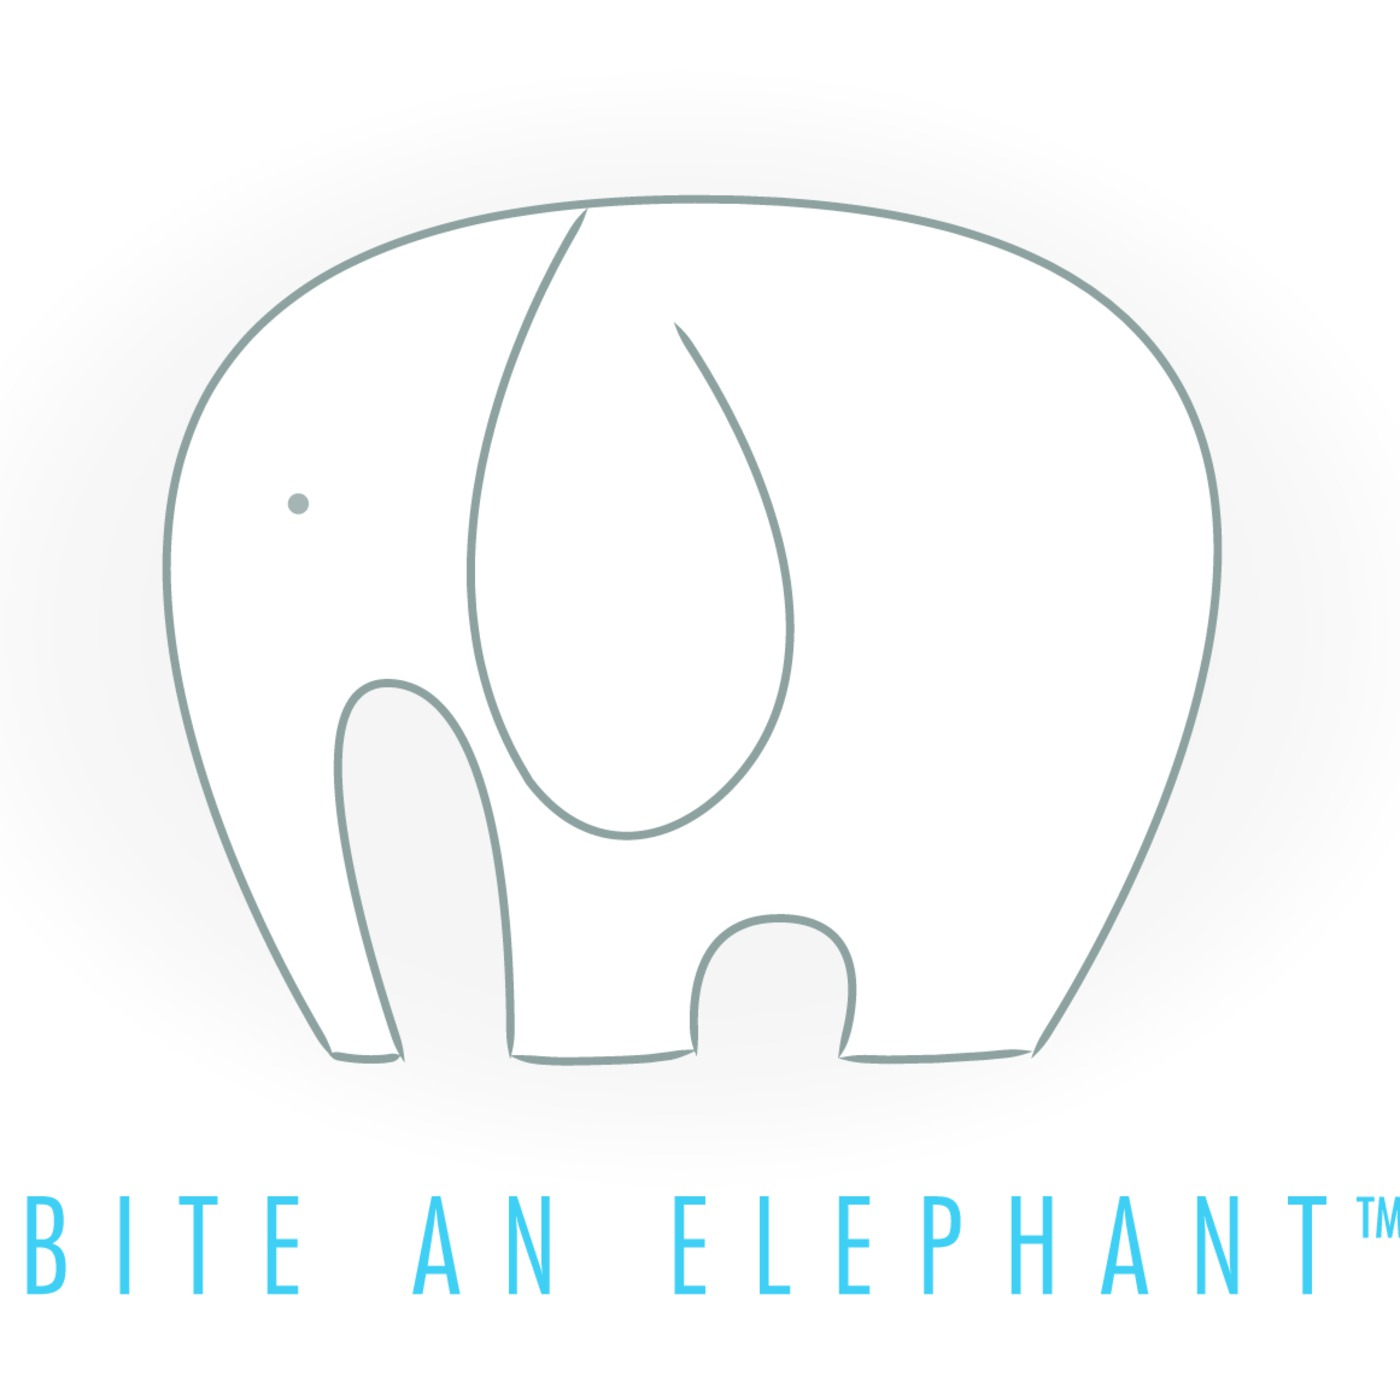 Bite An Elephant